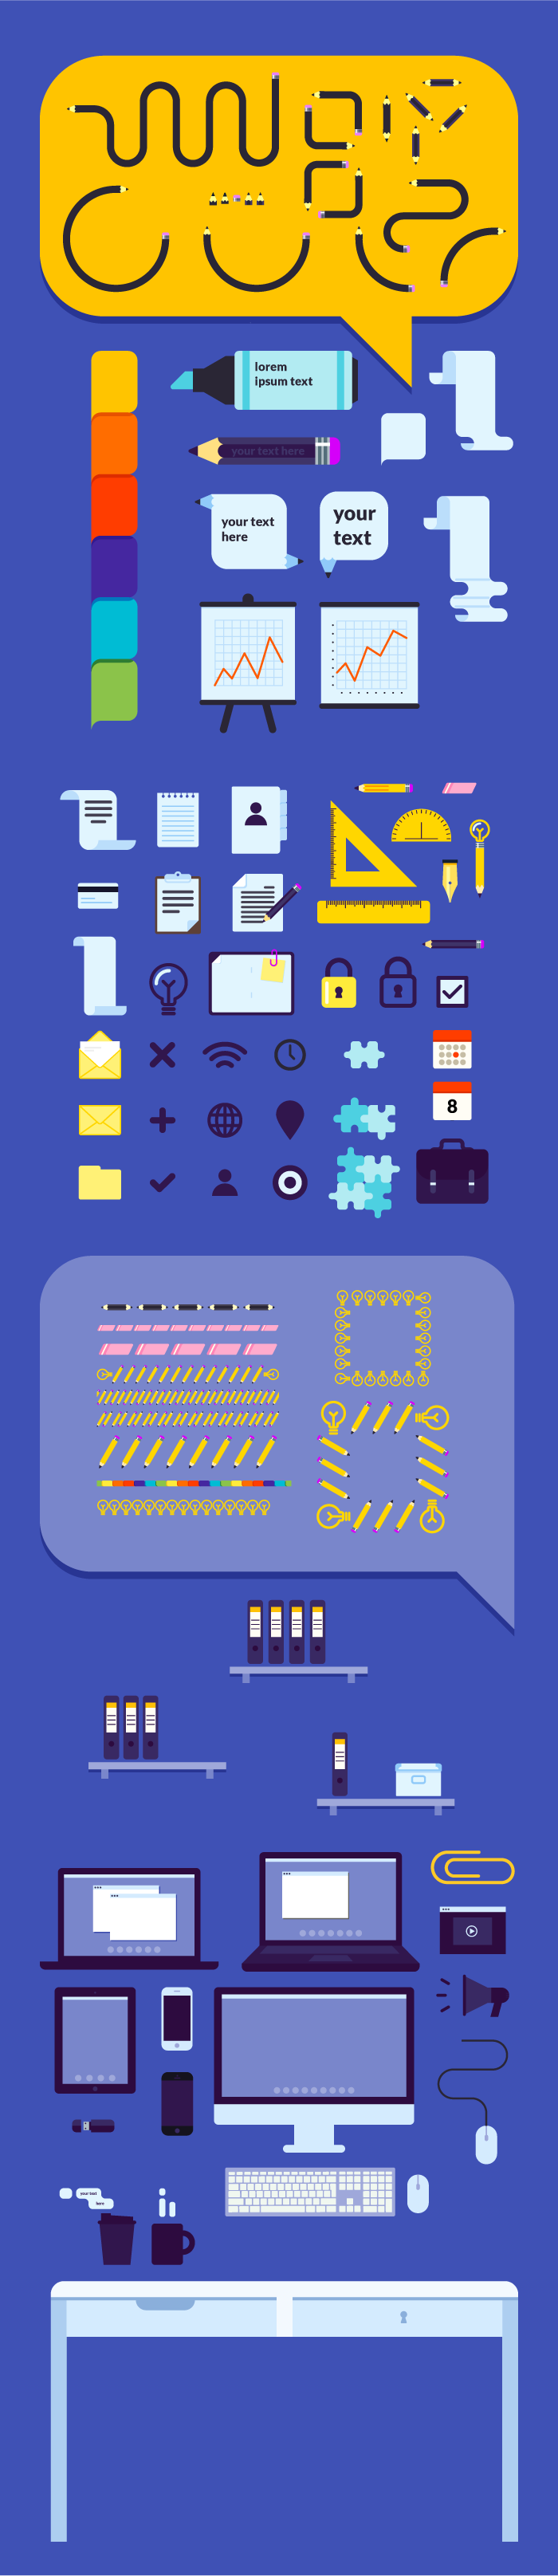 office_infographic